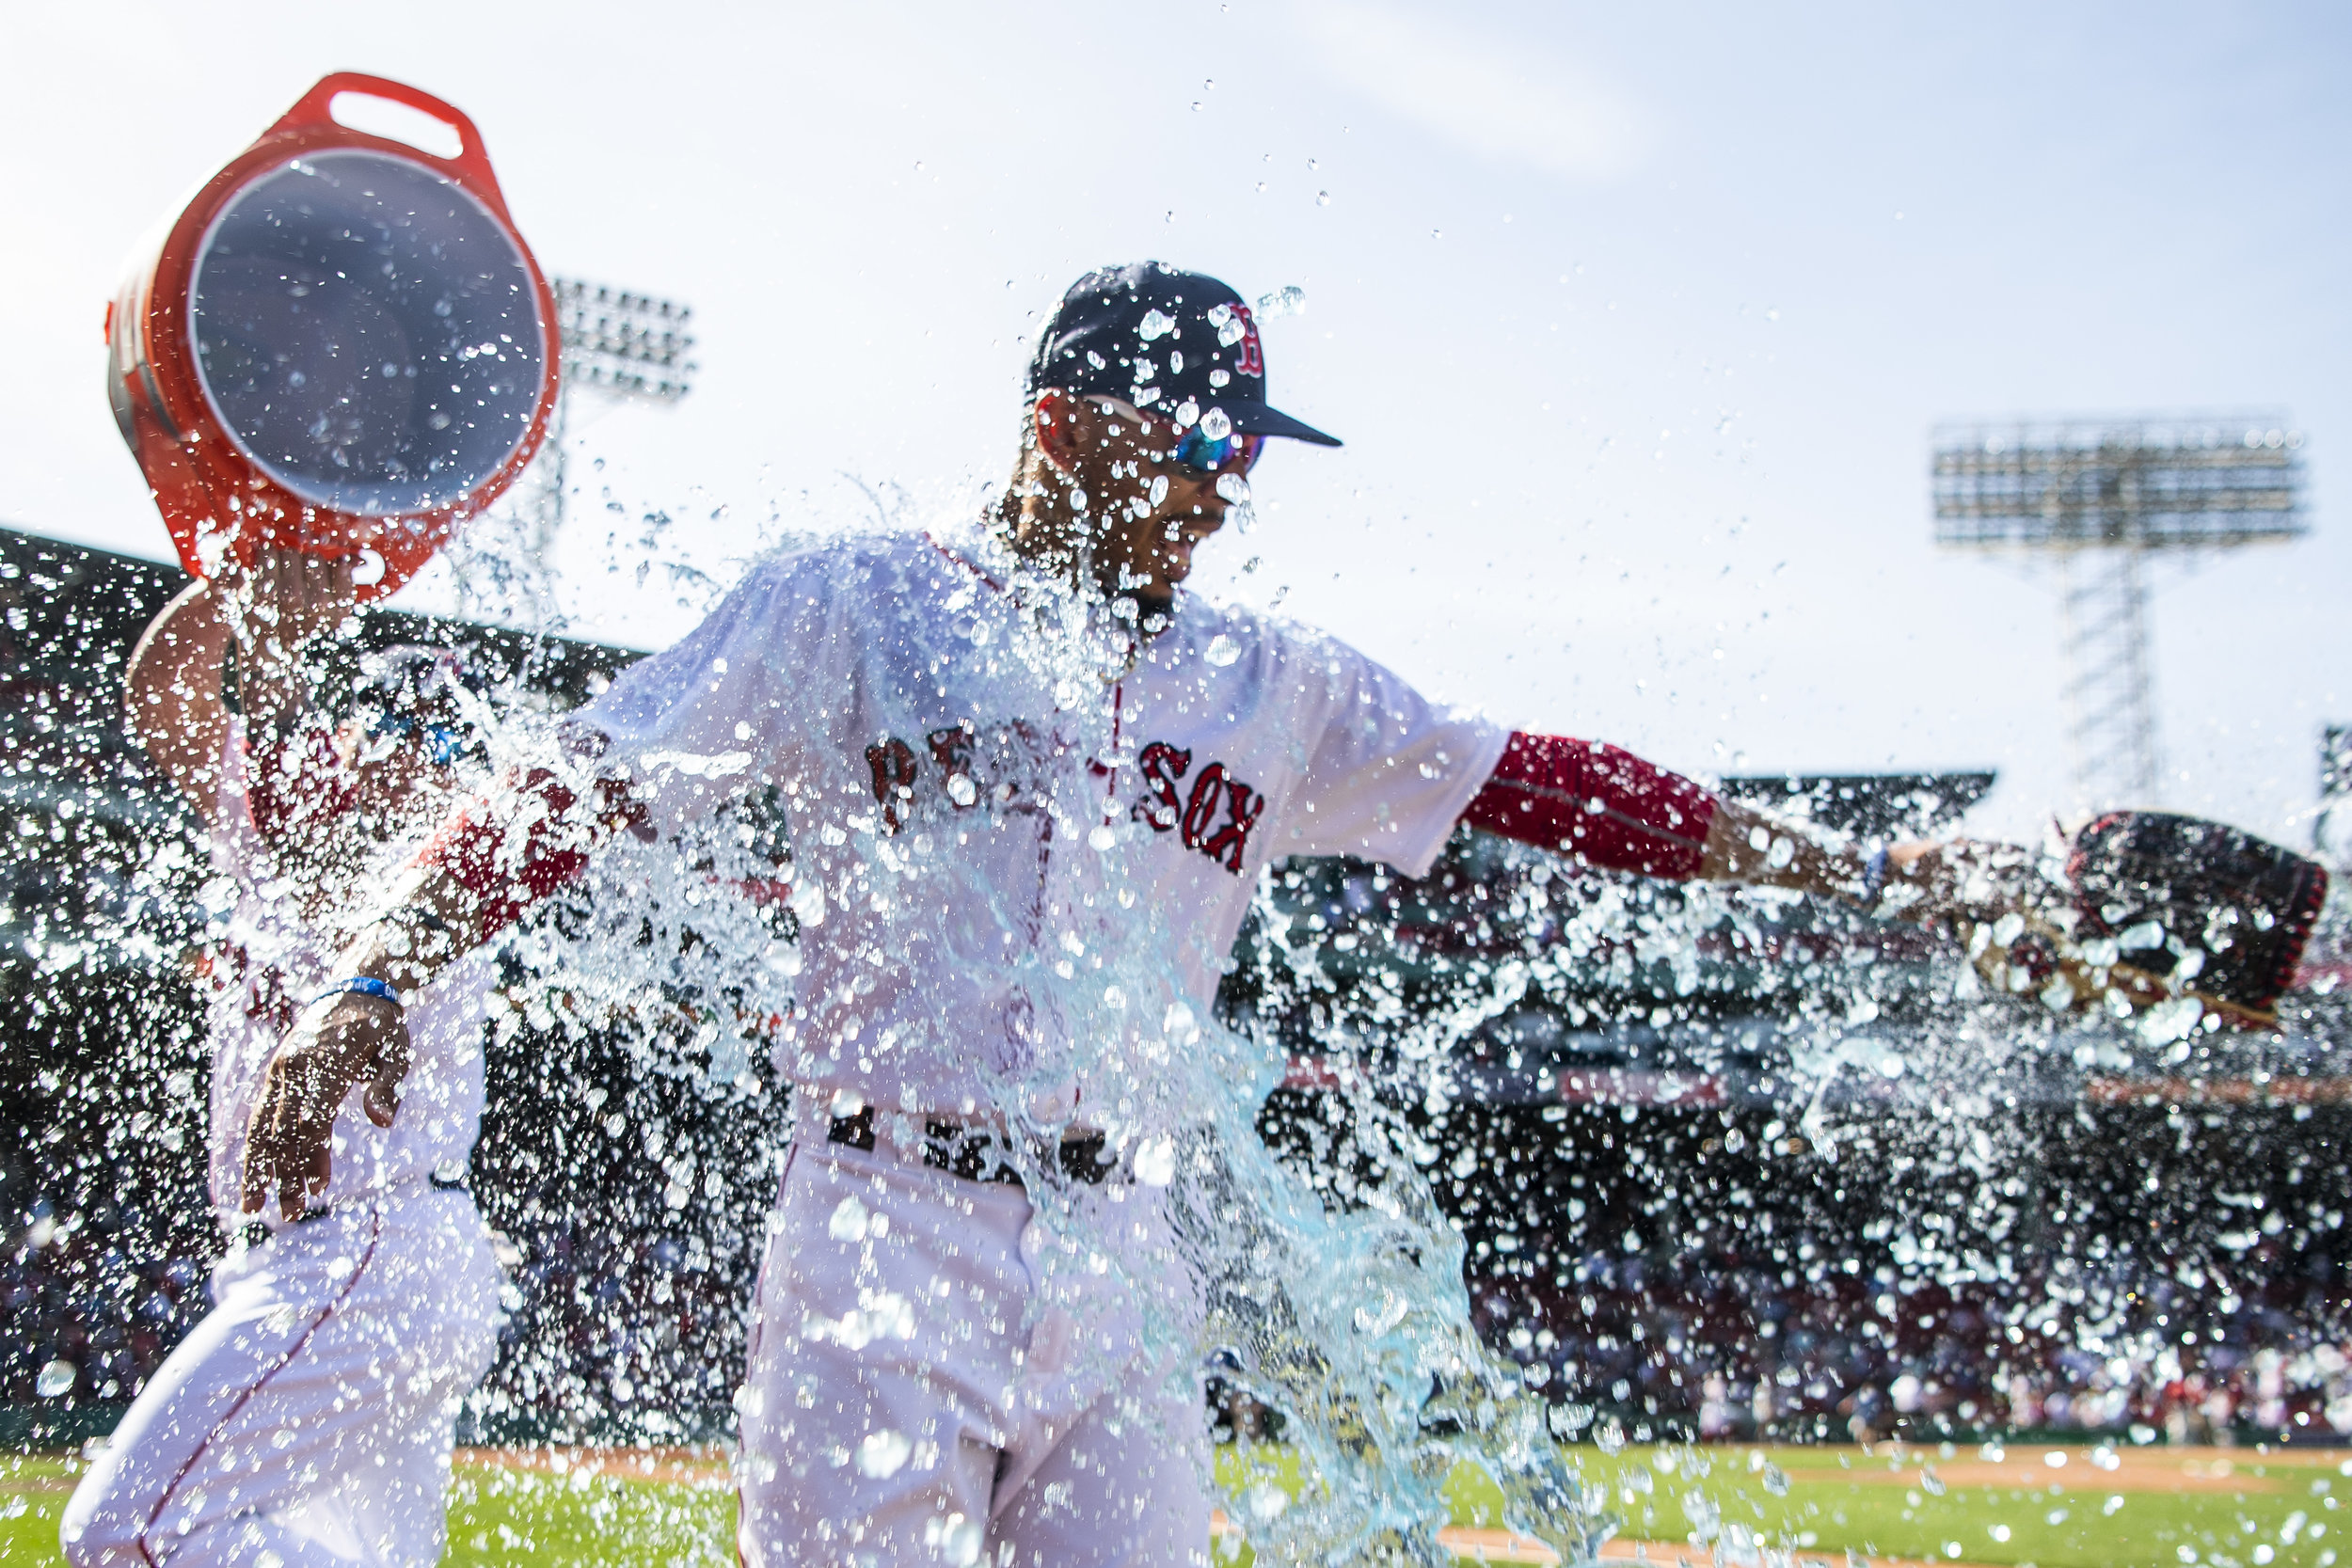 May 2, 2018, Boston, MA: Boston Red Sox catcher Christian Vasquez dumps a cooler of Gatorade on Boston Red Sox outfielder Mookie Betts after the Boston Red Sox defeated the Kansas City Royals at Fenway Park in Boston, Massachusetts Wednesday, May 2, 2018. (Photo by Matthew Thomas/Boston Red Sox)